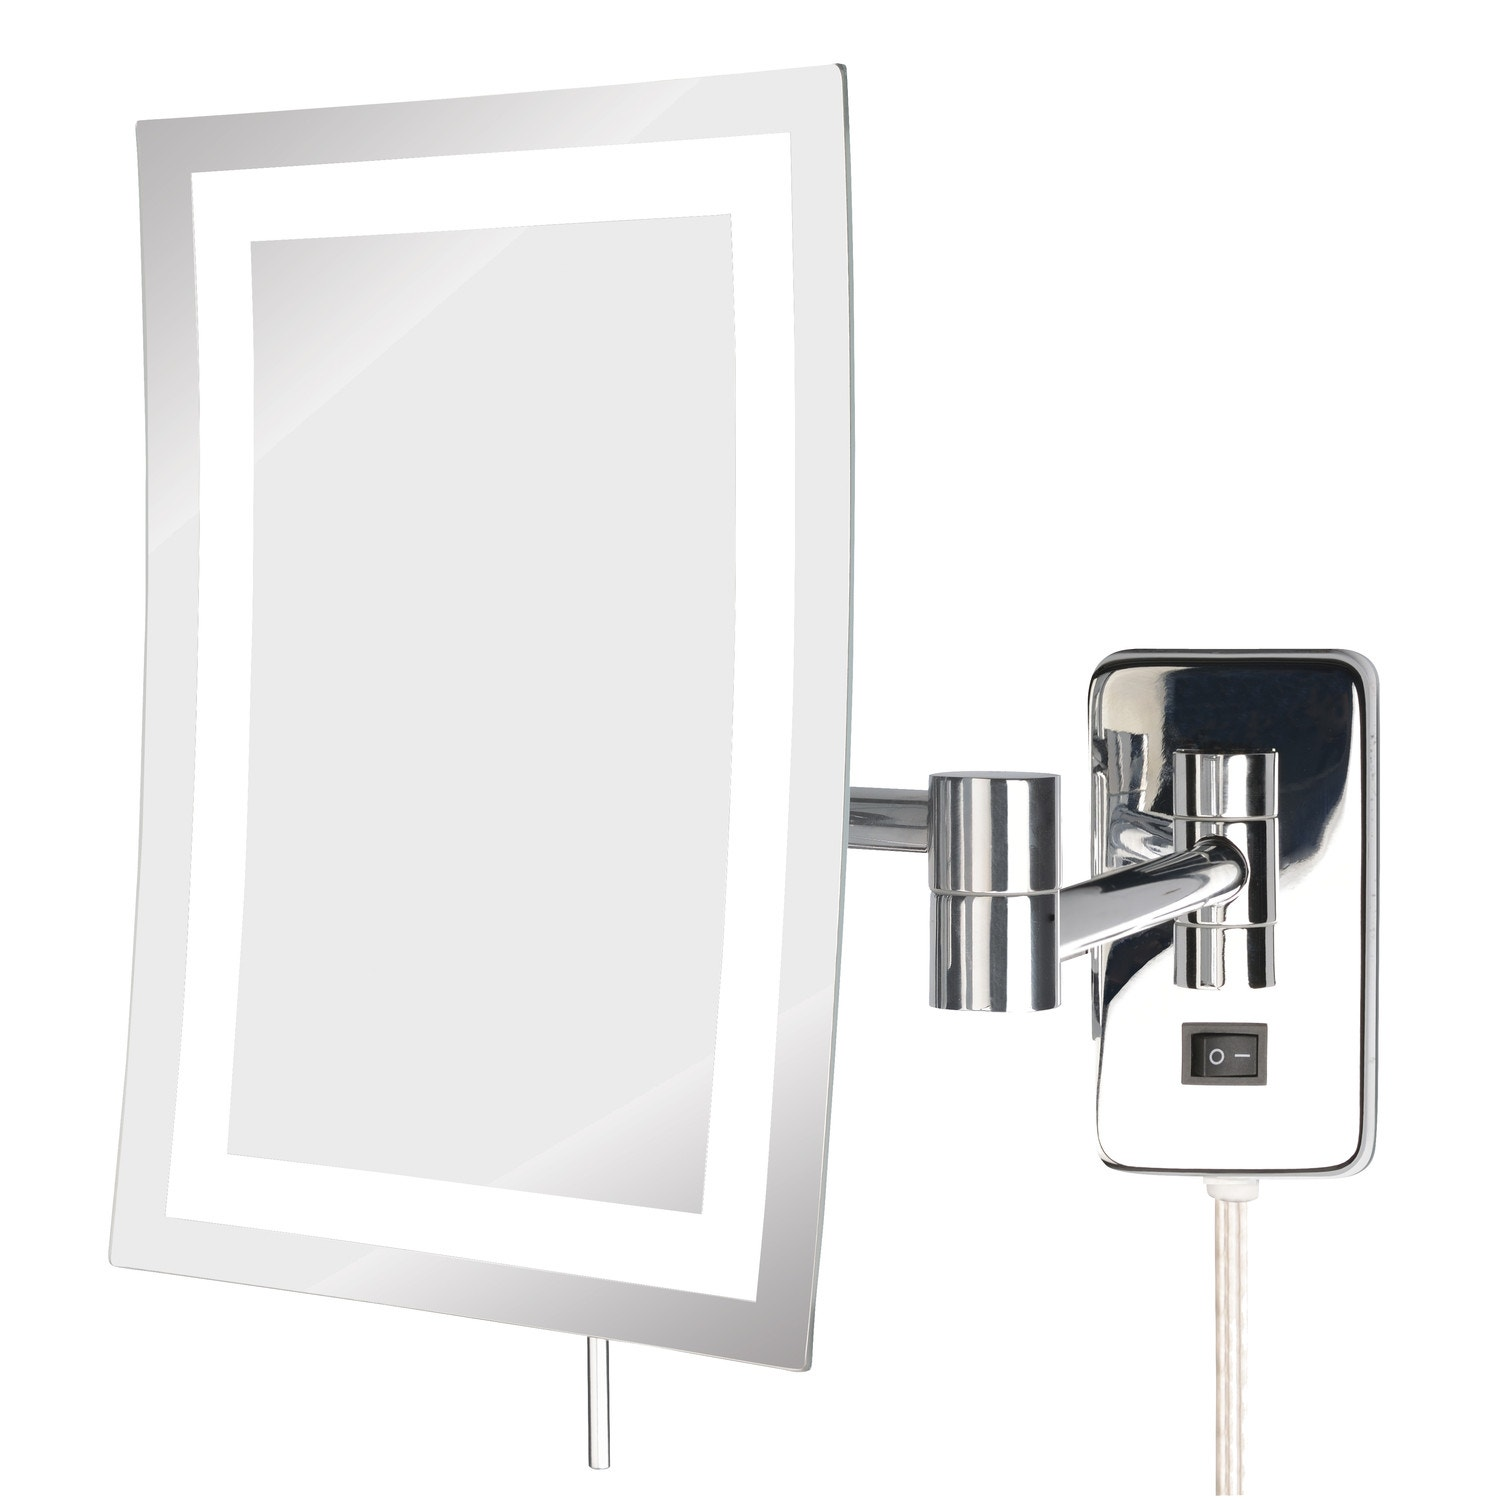 "Jerdon LED Lighted Wall Mount Mirror, 6.5"" x 9"", Chrome"